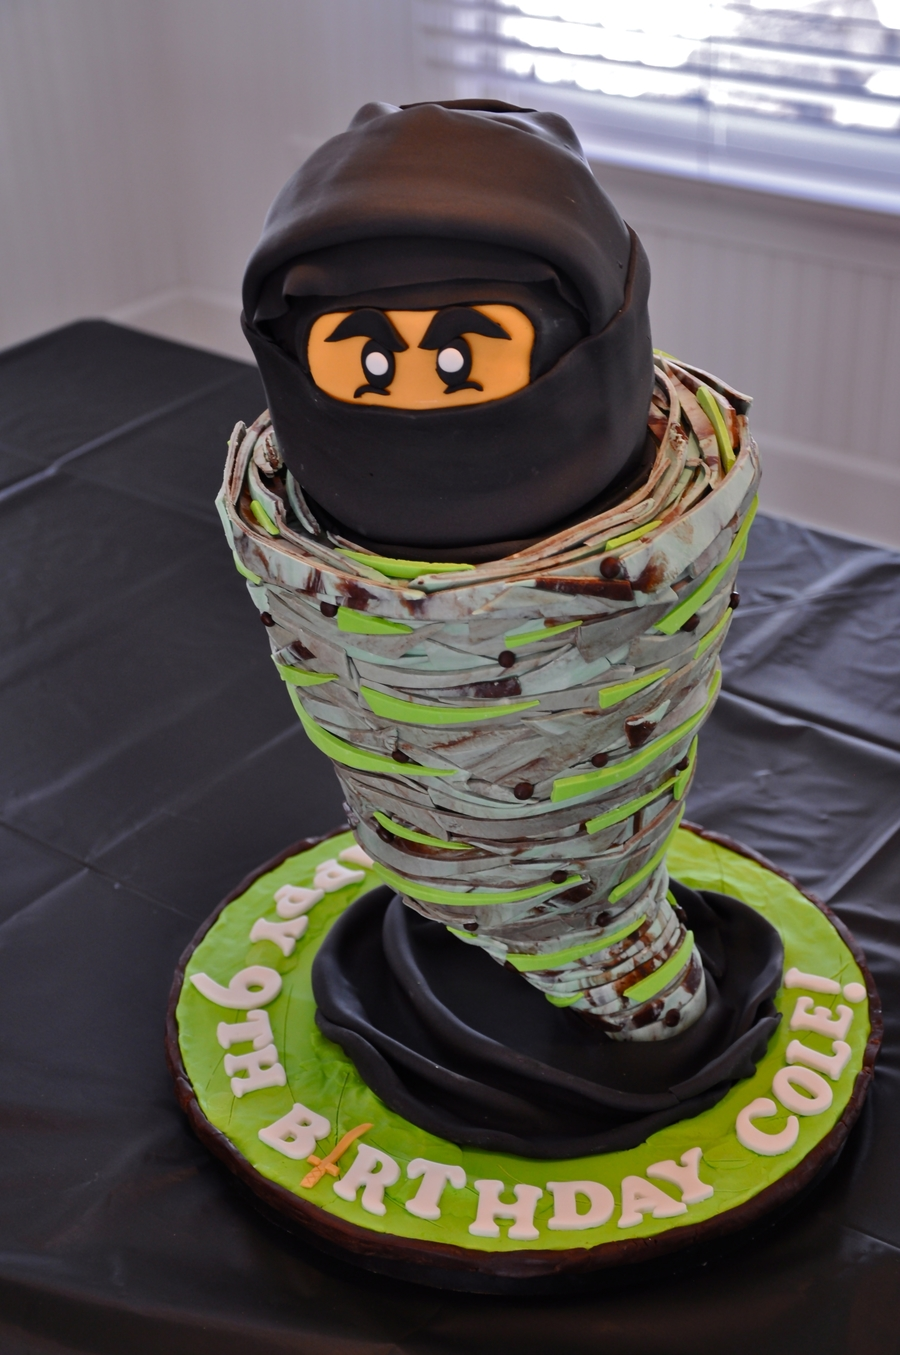 Cake Decoration At Coles : Lego Ninjago Birthday Cake - CakeCentral.com